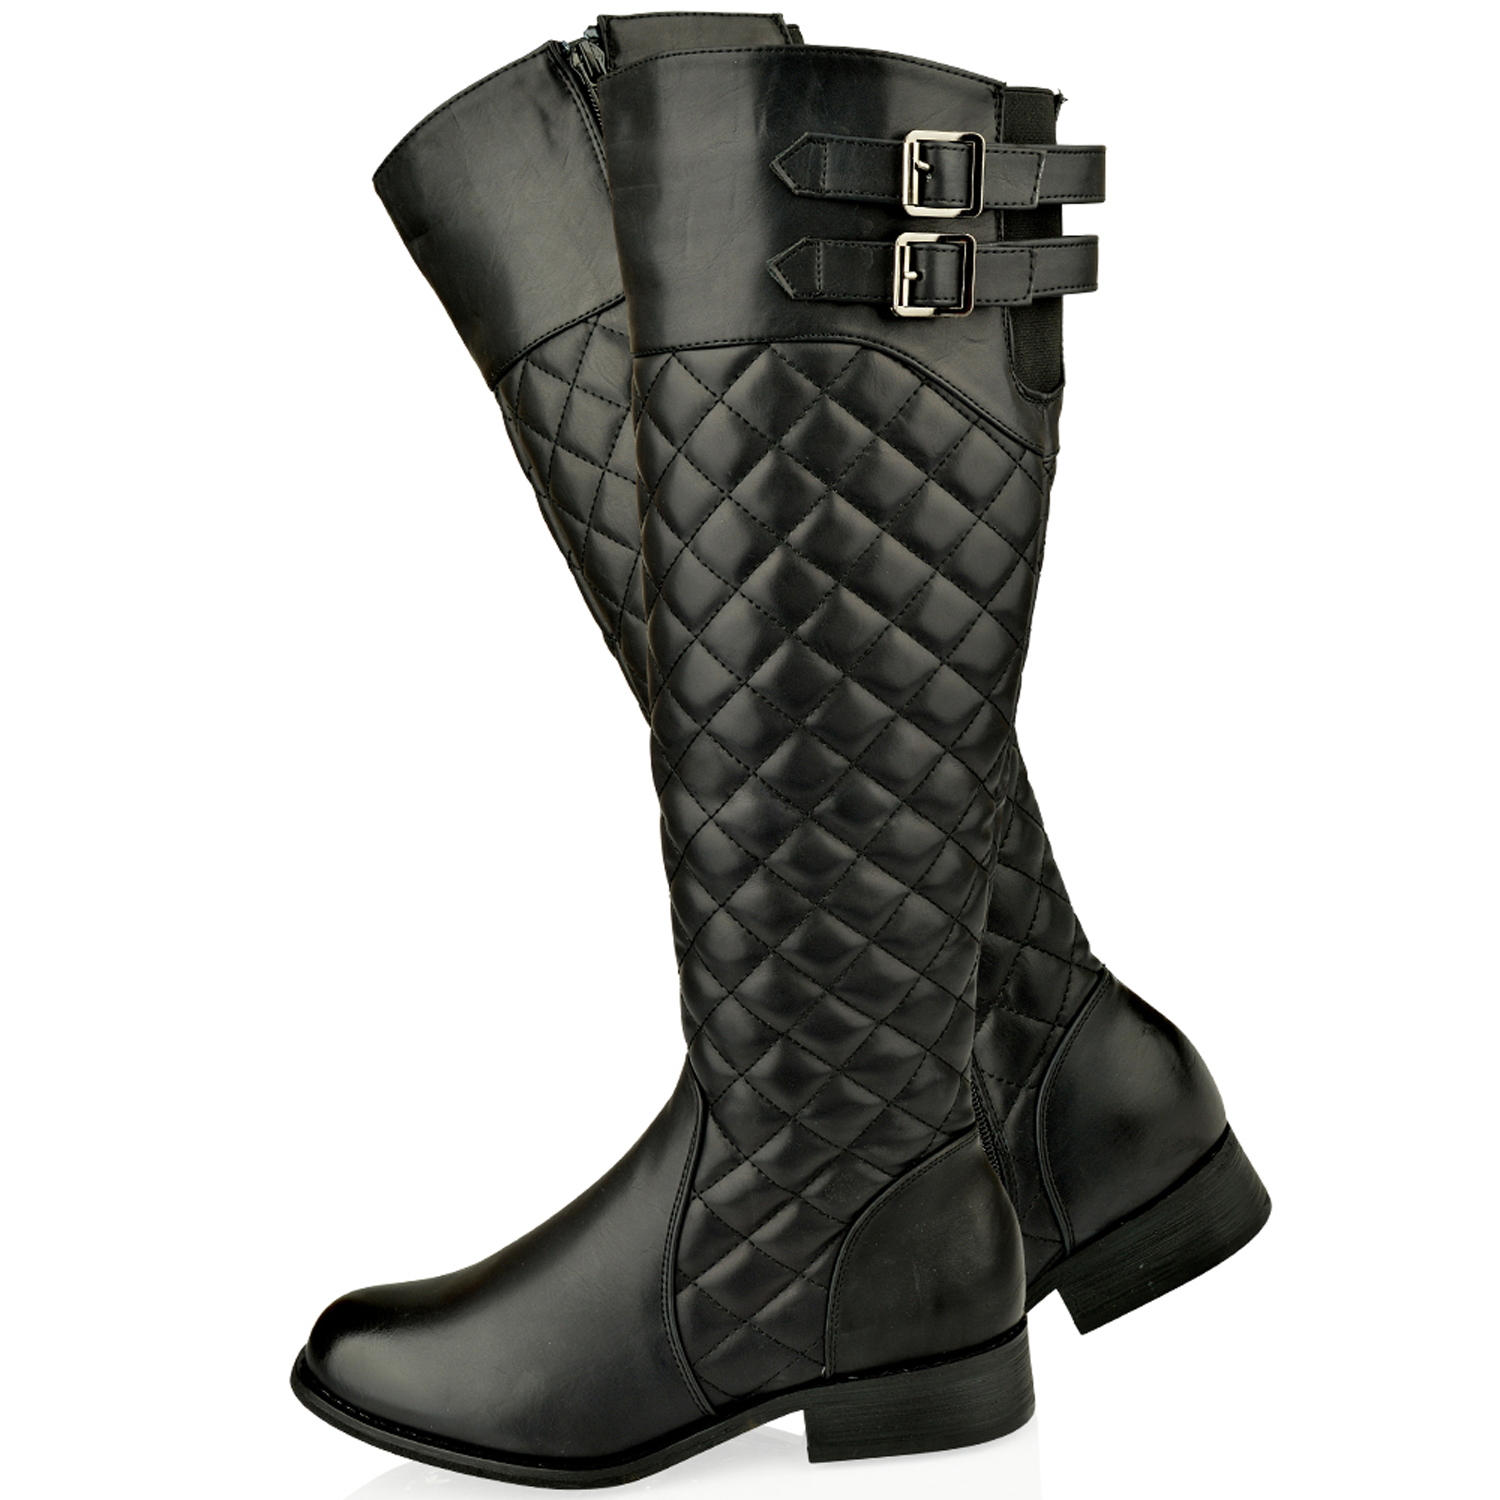 WOMENS LADIES FLAT KNEE HIGH QUILTED RIDING CALF BOOTS GUSSET FAUX ... : quilted long boots - Adamdwight.com